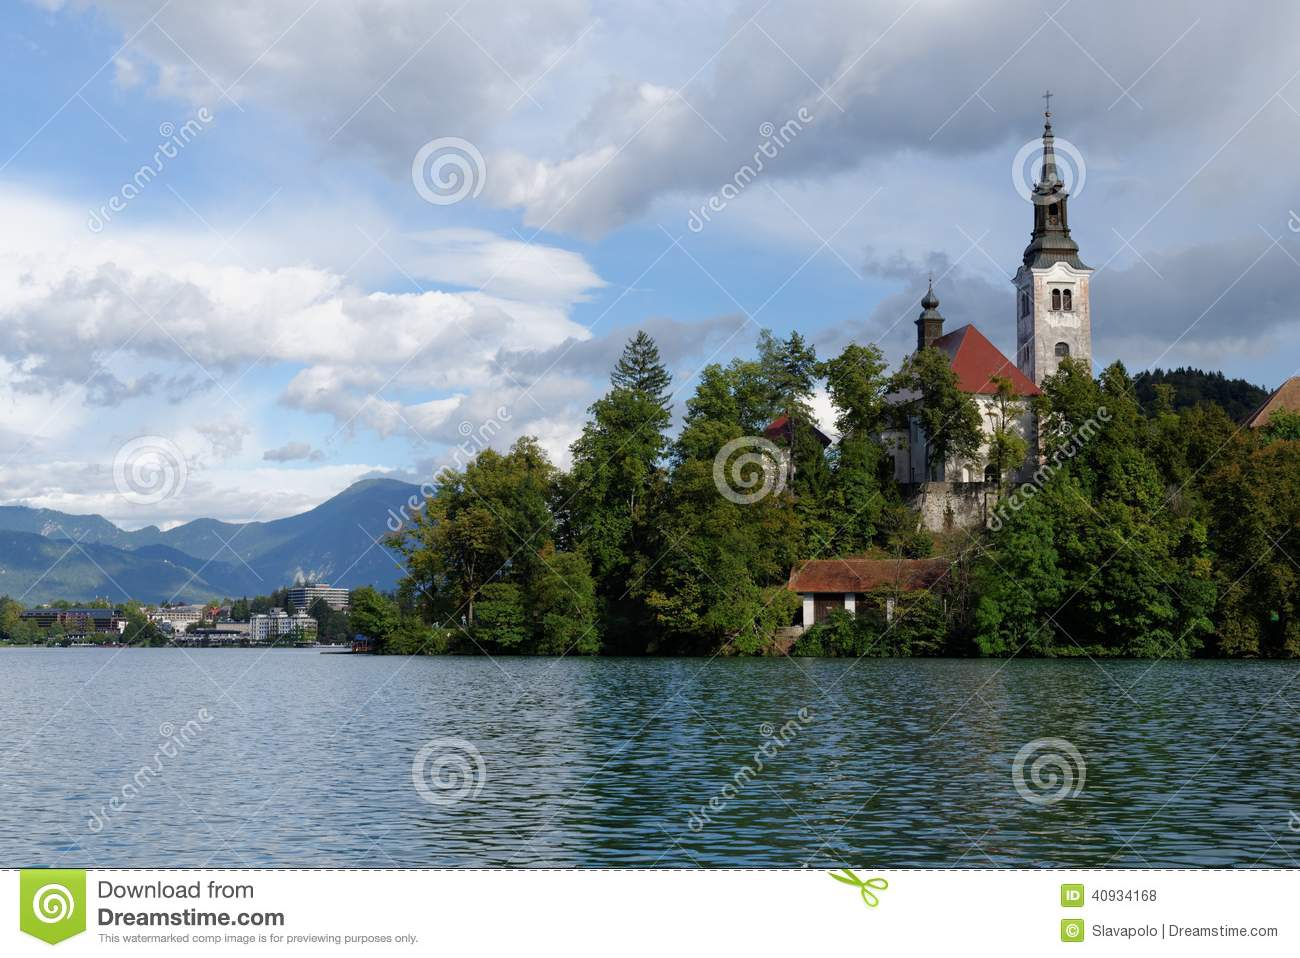 how to get to the island in lake bled